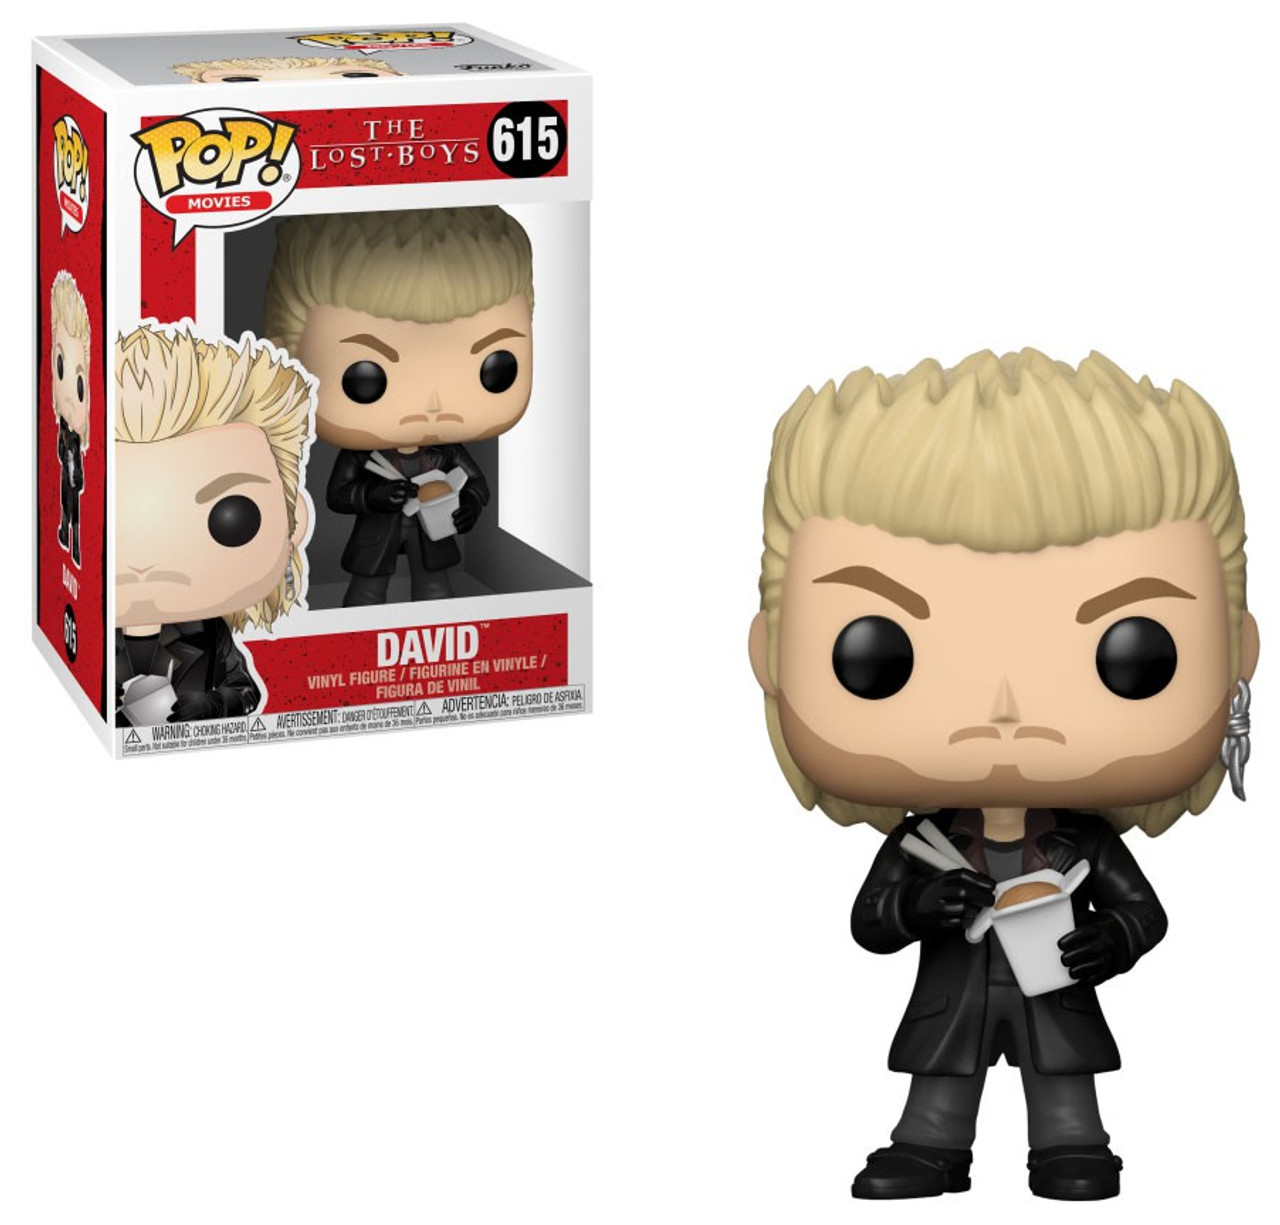 33c971c98e3 Funko The Lost Boys Funko POP Movies David with Noodles Vinyl Figure 615 -  ToyWiz